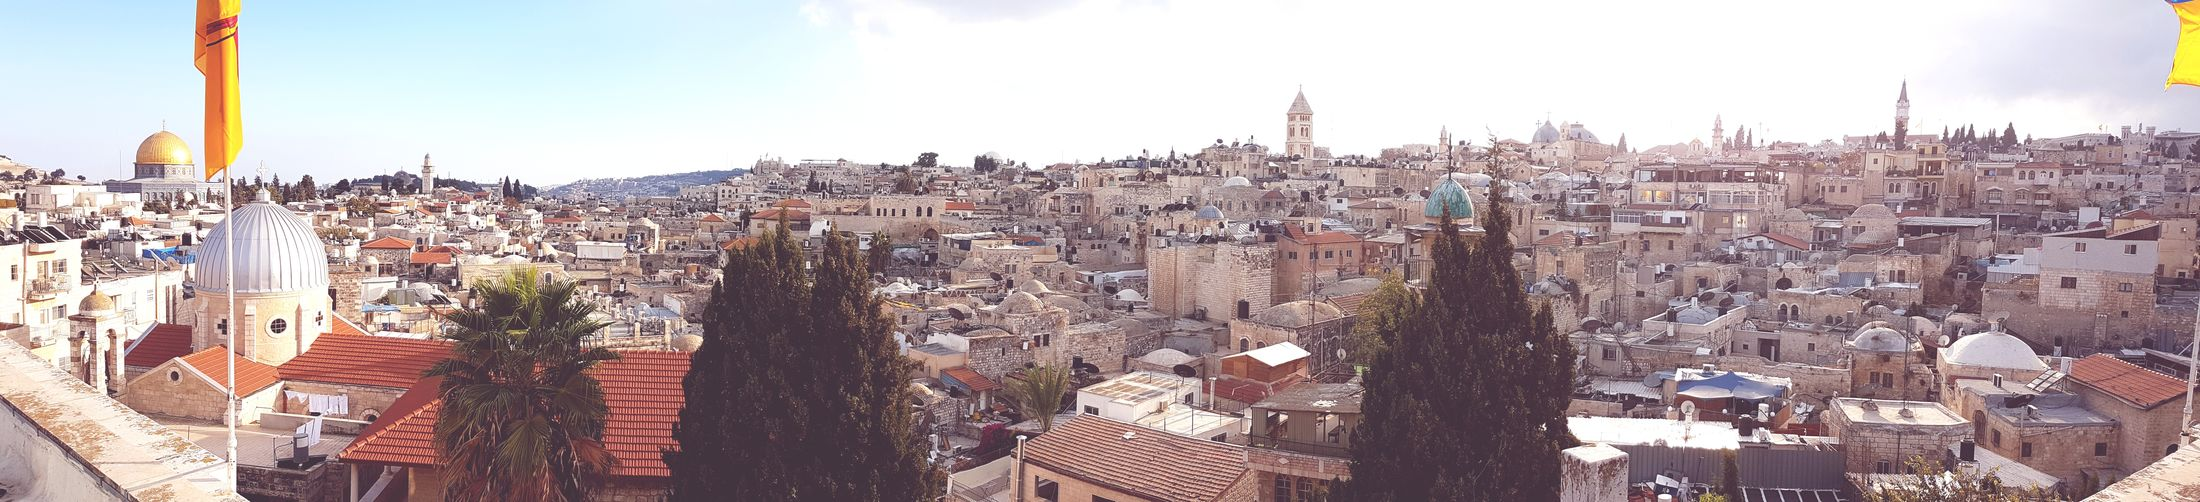 View of Jérusalem #jerusalem #Palestine #israel View View From Above EyeEm Selects Sky Day Outdoors